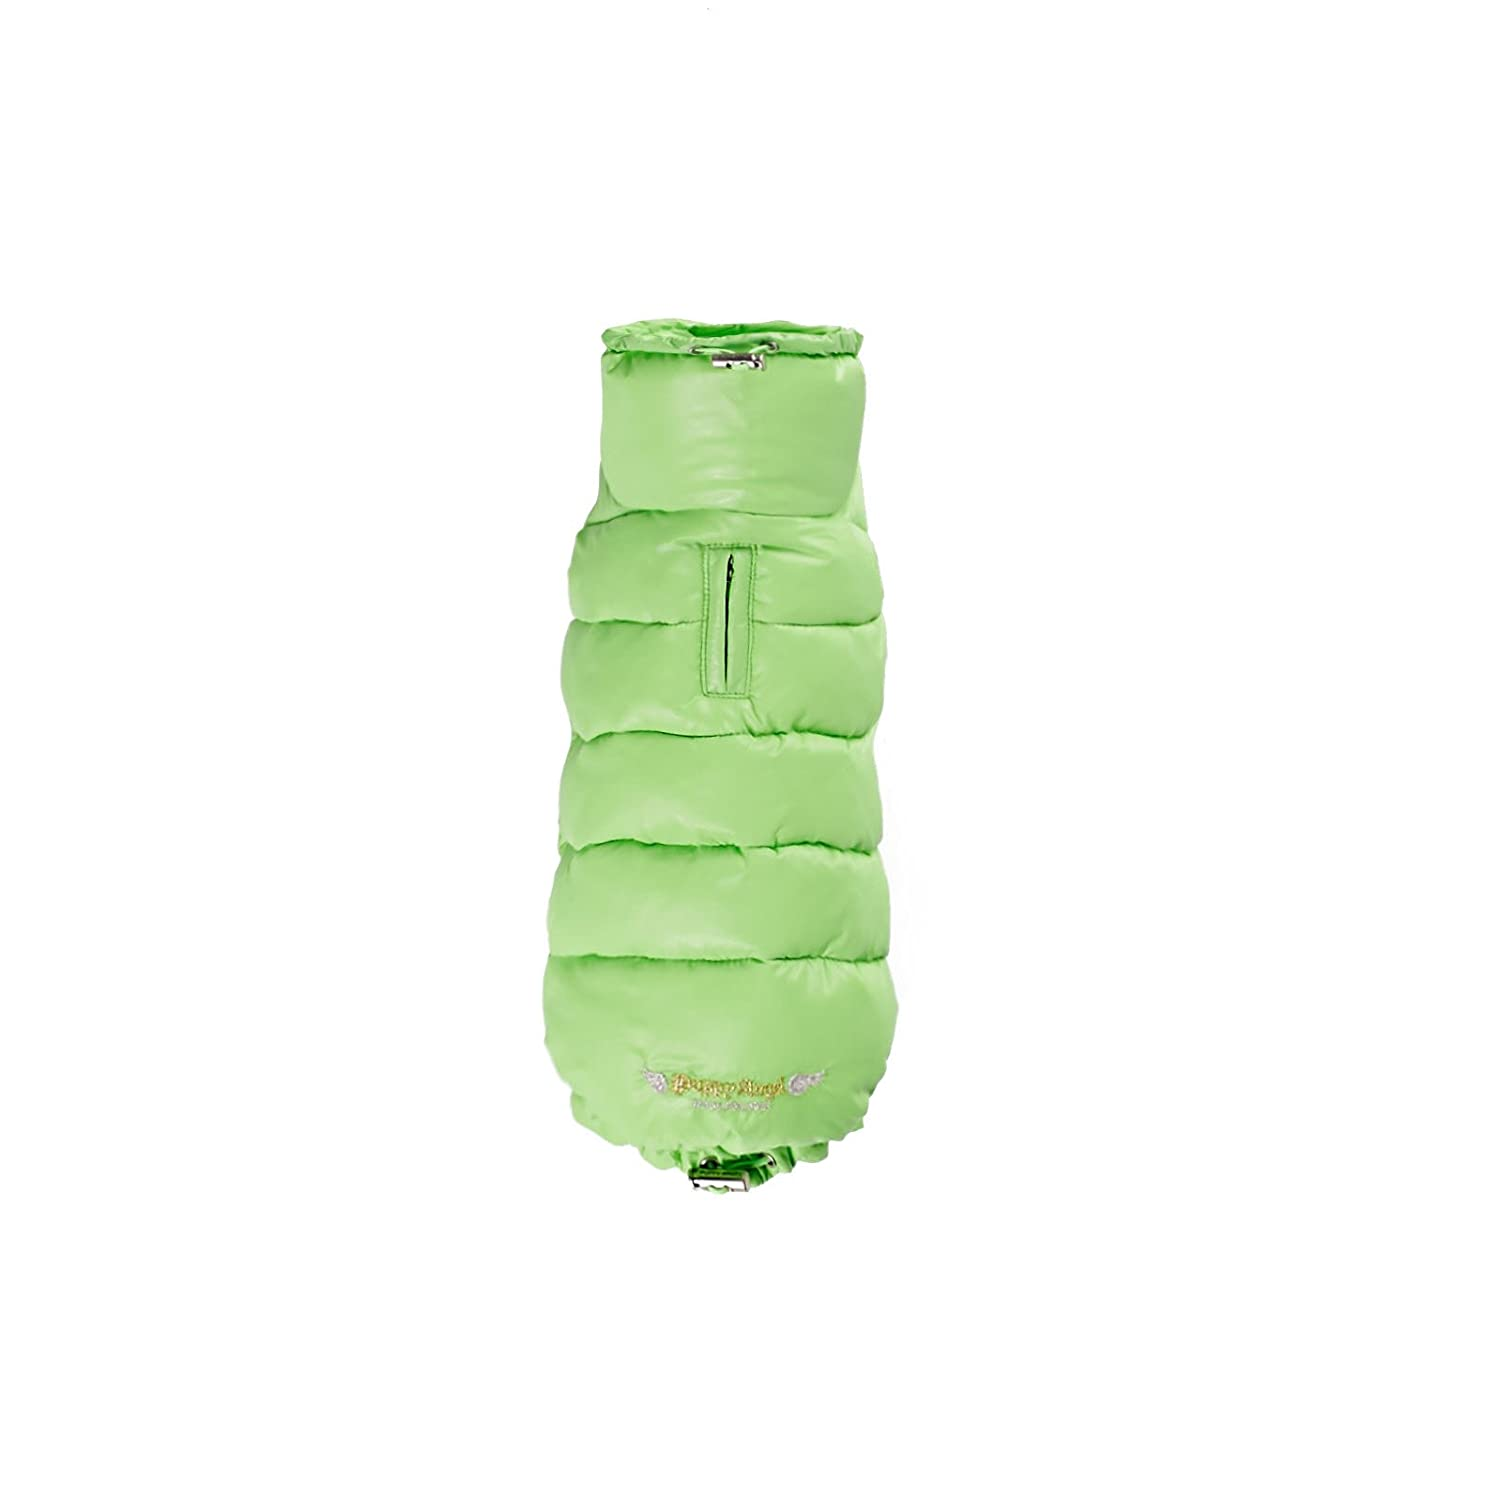 Green 7X-Large Green 7X-Large Puppy Angel PA-OW230- 817 GN 7XL Dog Padding Coat, 7X-Large, Green